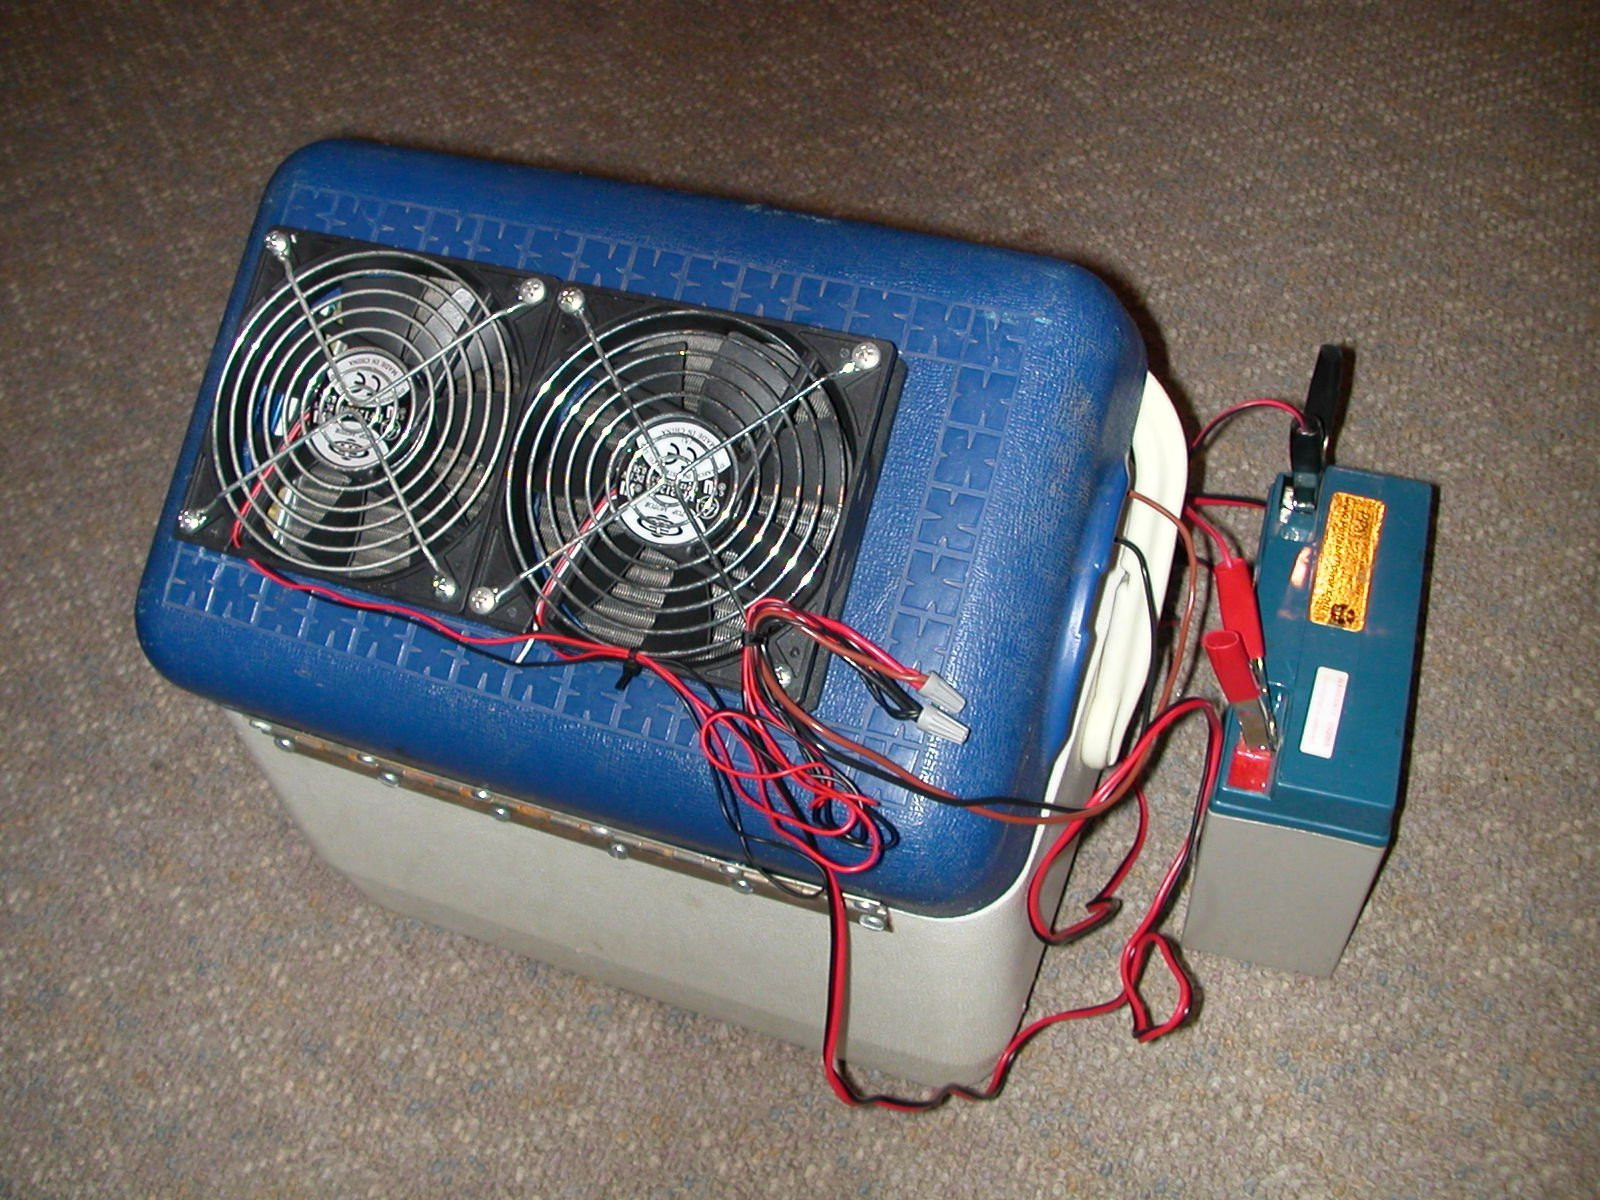 Best ideas about DIY Air Conditioner . Save or Pin Portable 12V Air Conditioner Cheap and Easy 12 Steps Now.